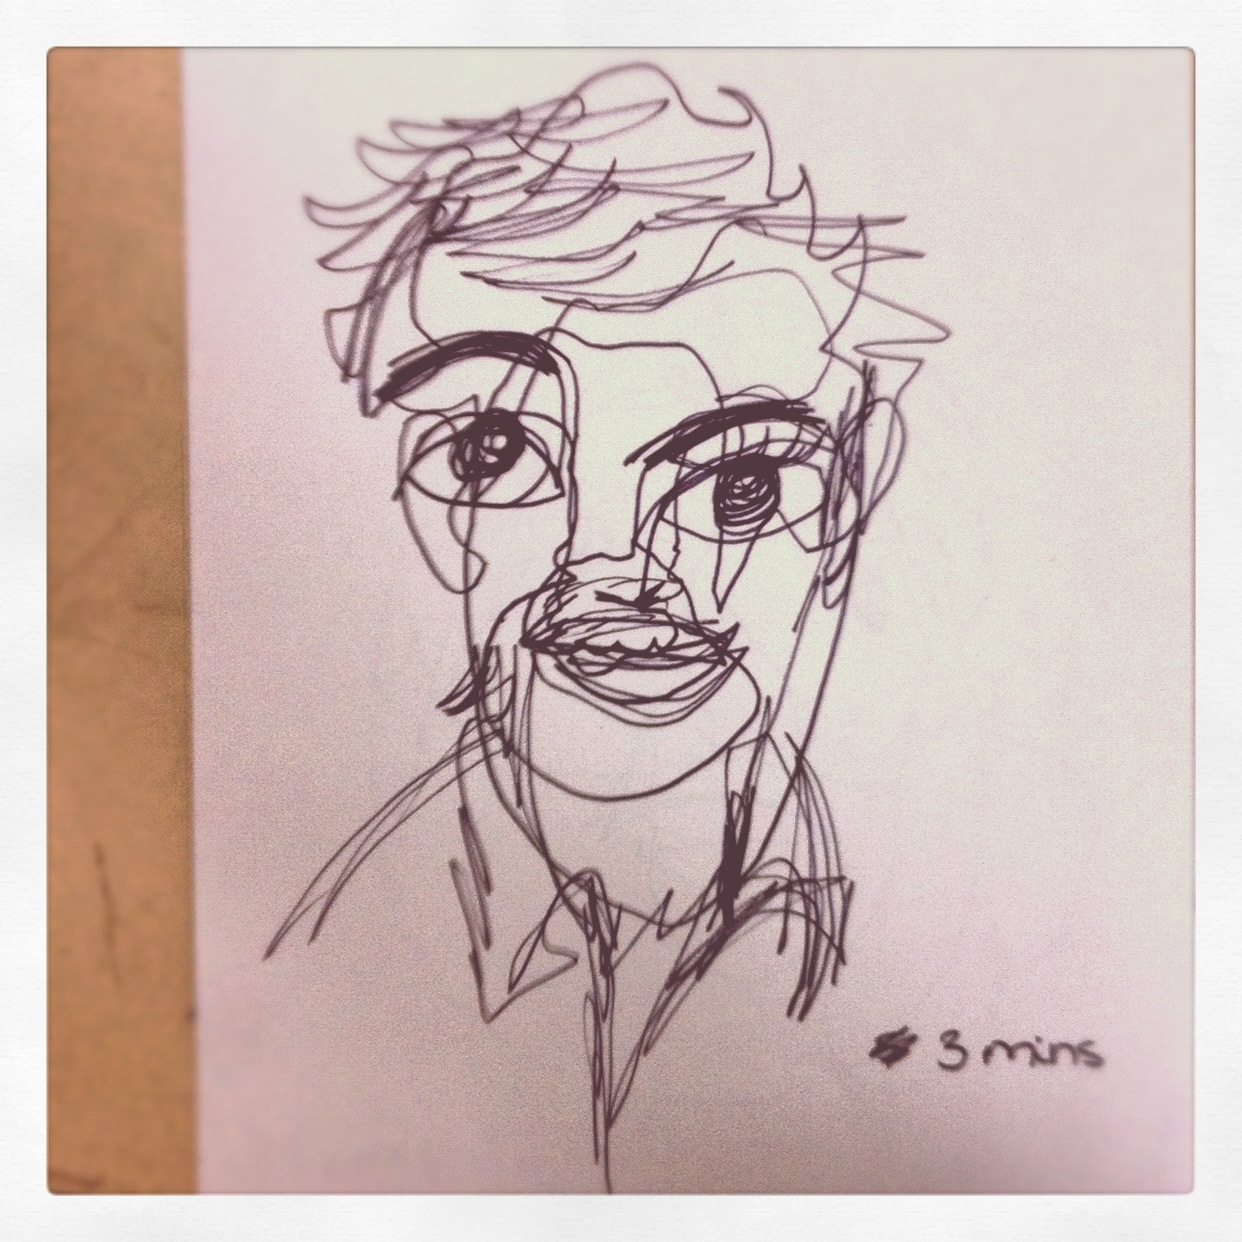 Line Drawing Year 1 : The art room continuous line drawing by dorsa in year